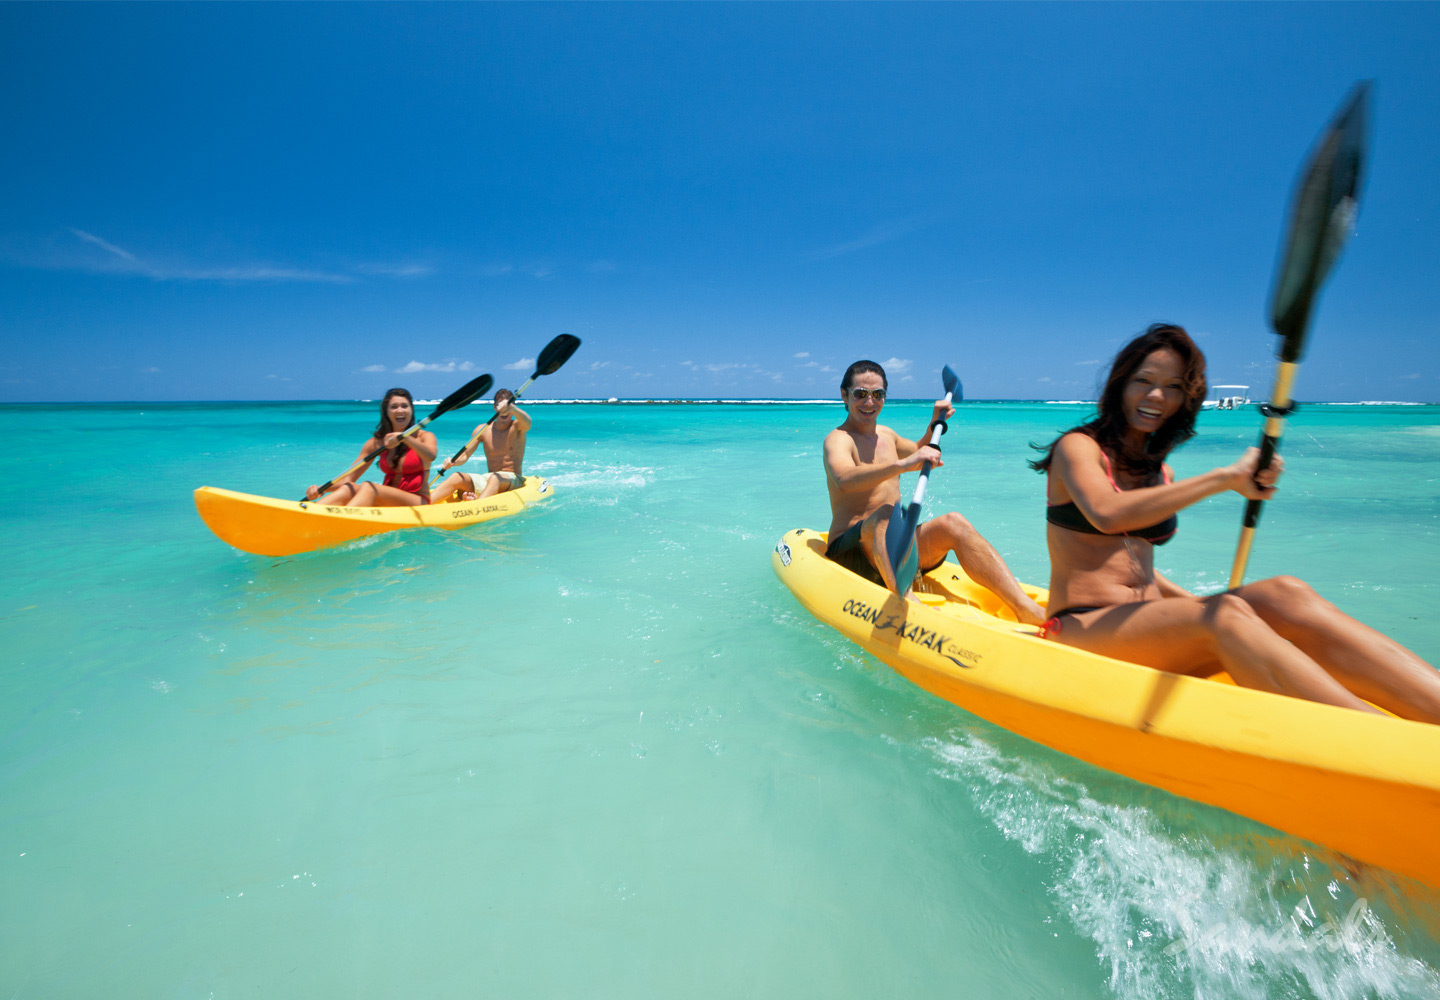 Travel Agency All-Inclusive Resort Sandals Ochi 102